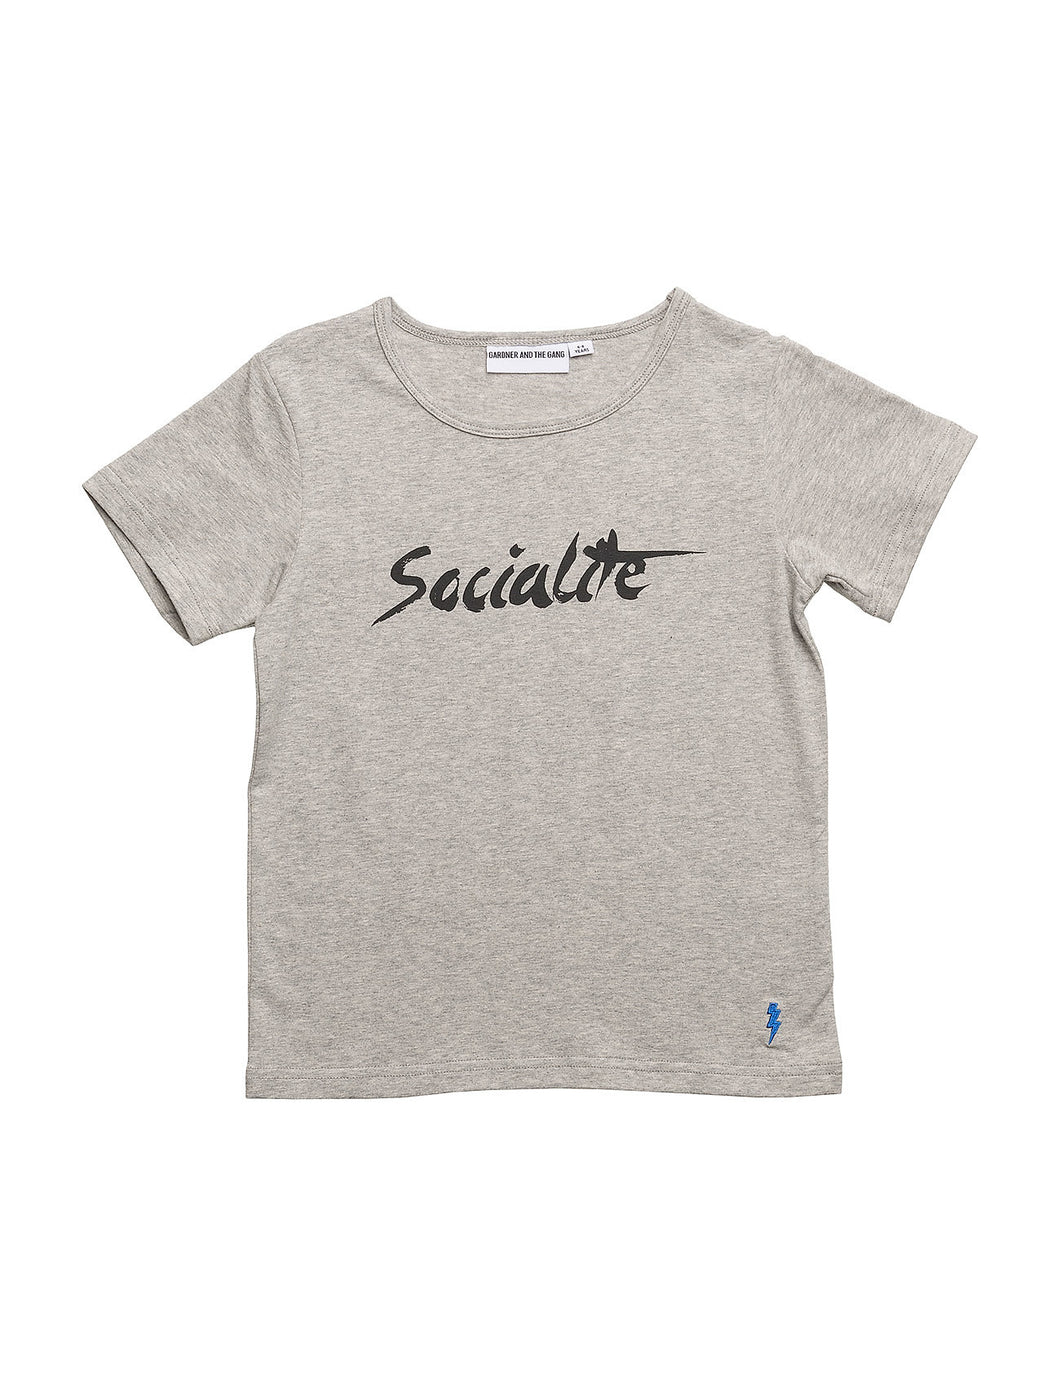 Gardner & the Gang Socialite Tee